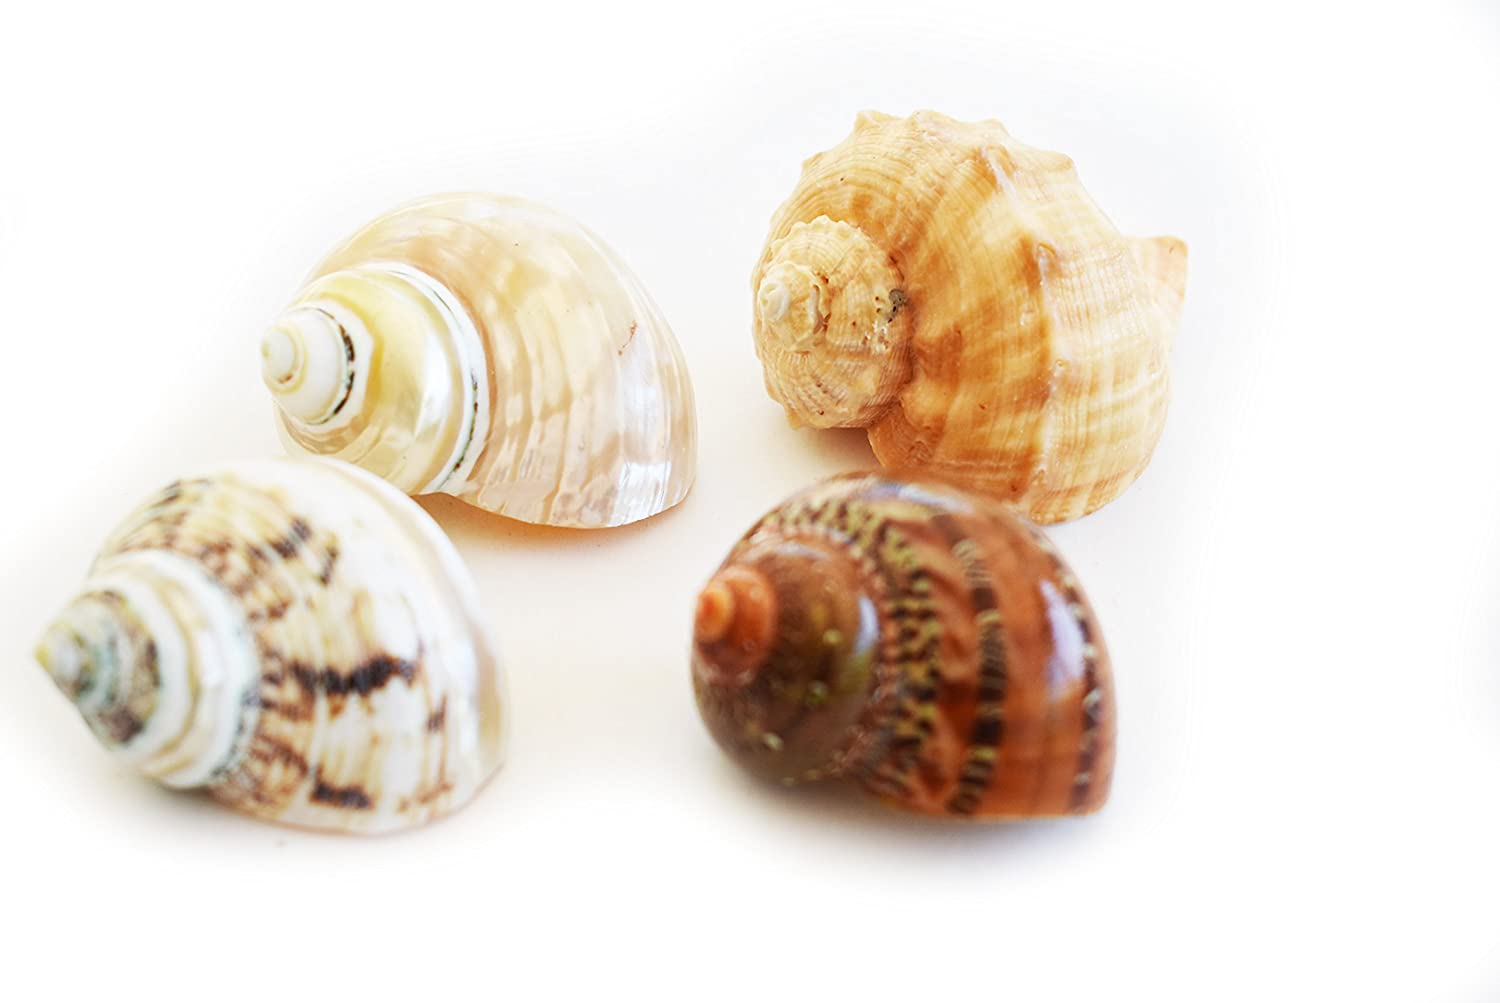 Florida Shells and Gifts Inc. 4 Large Shell Hermit Crab Changing Set - Select Shells - Large 1-1 1/2+ opening - Turbo and Conch Shells